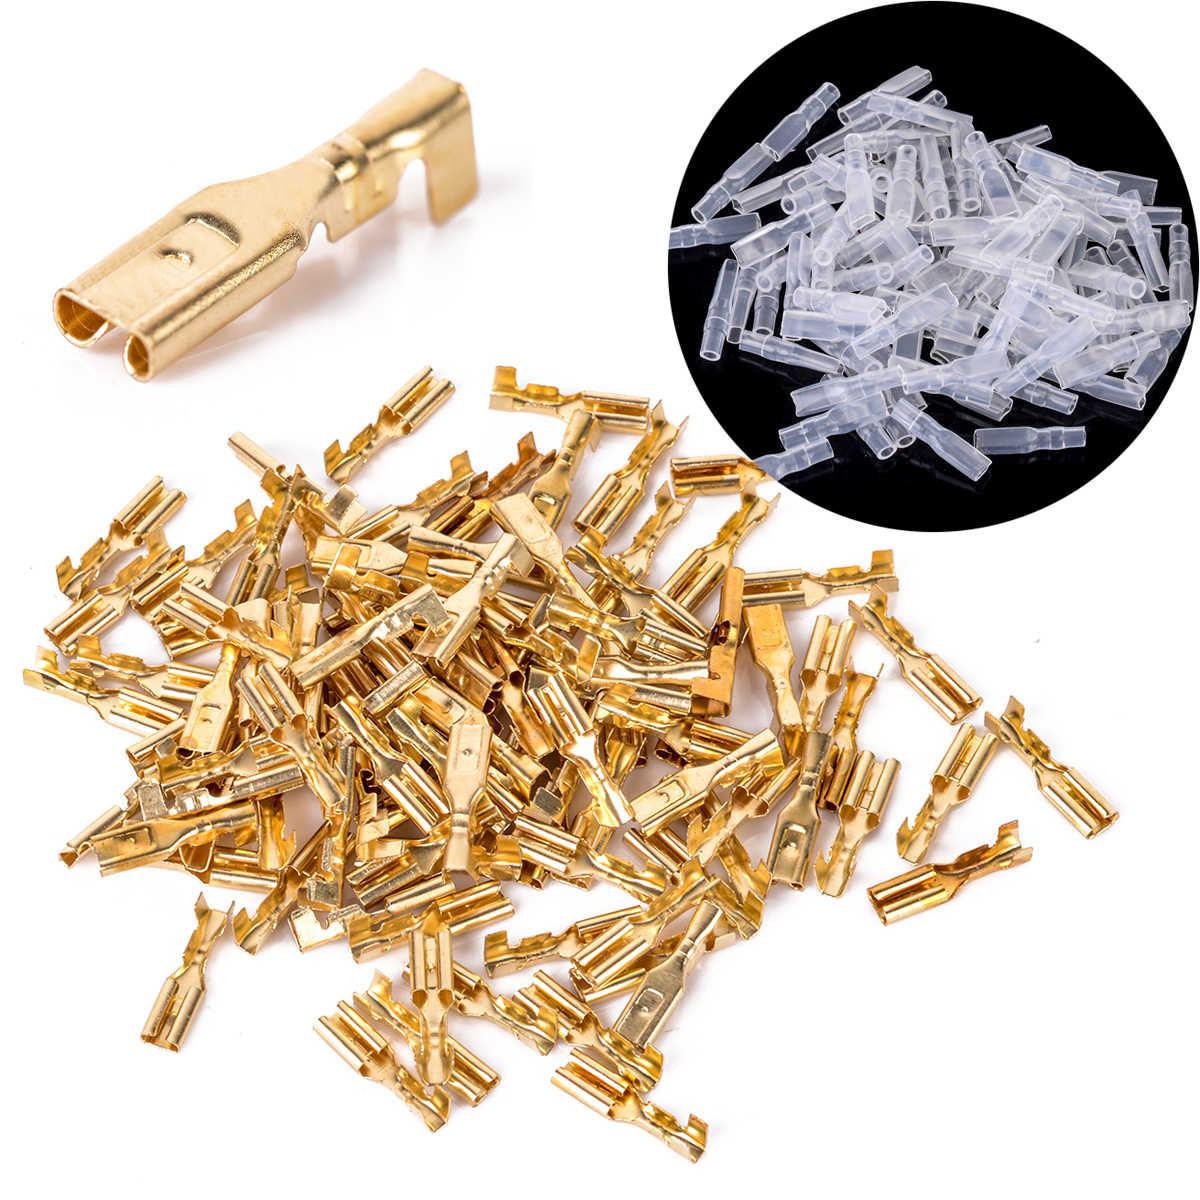 Detail Feedback Questions About 100pcs New Metal Female Crimp Spade Wire Harness Wiring Harnessauto Connector Ly China Brass Terminals 28mm Practical Connectors With Transparent Plastic Sleeves